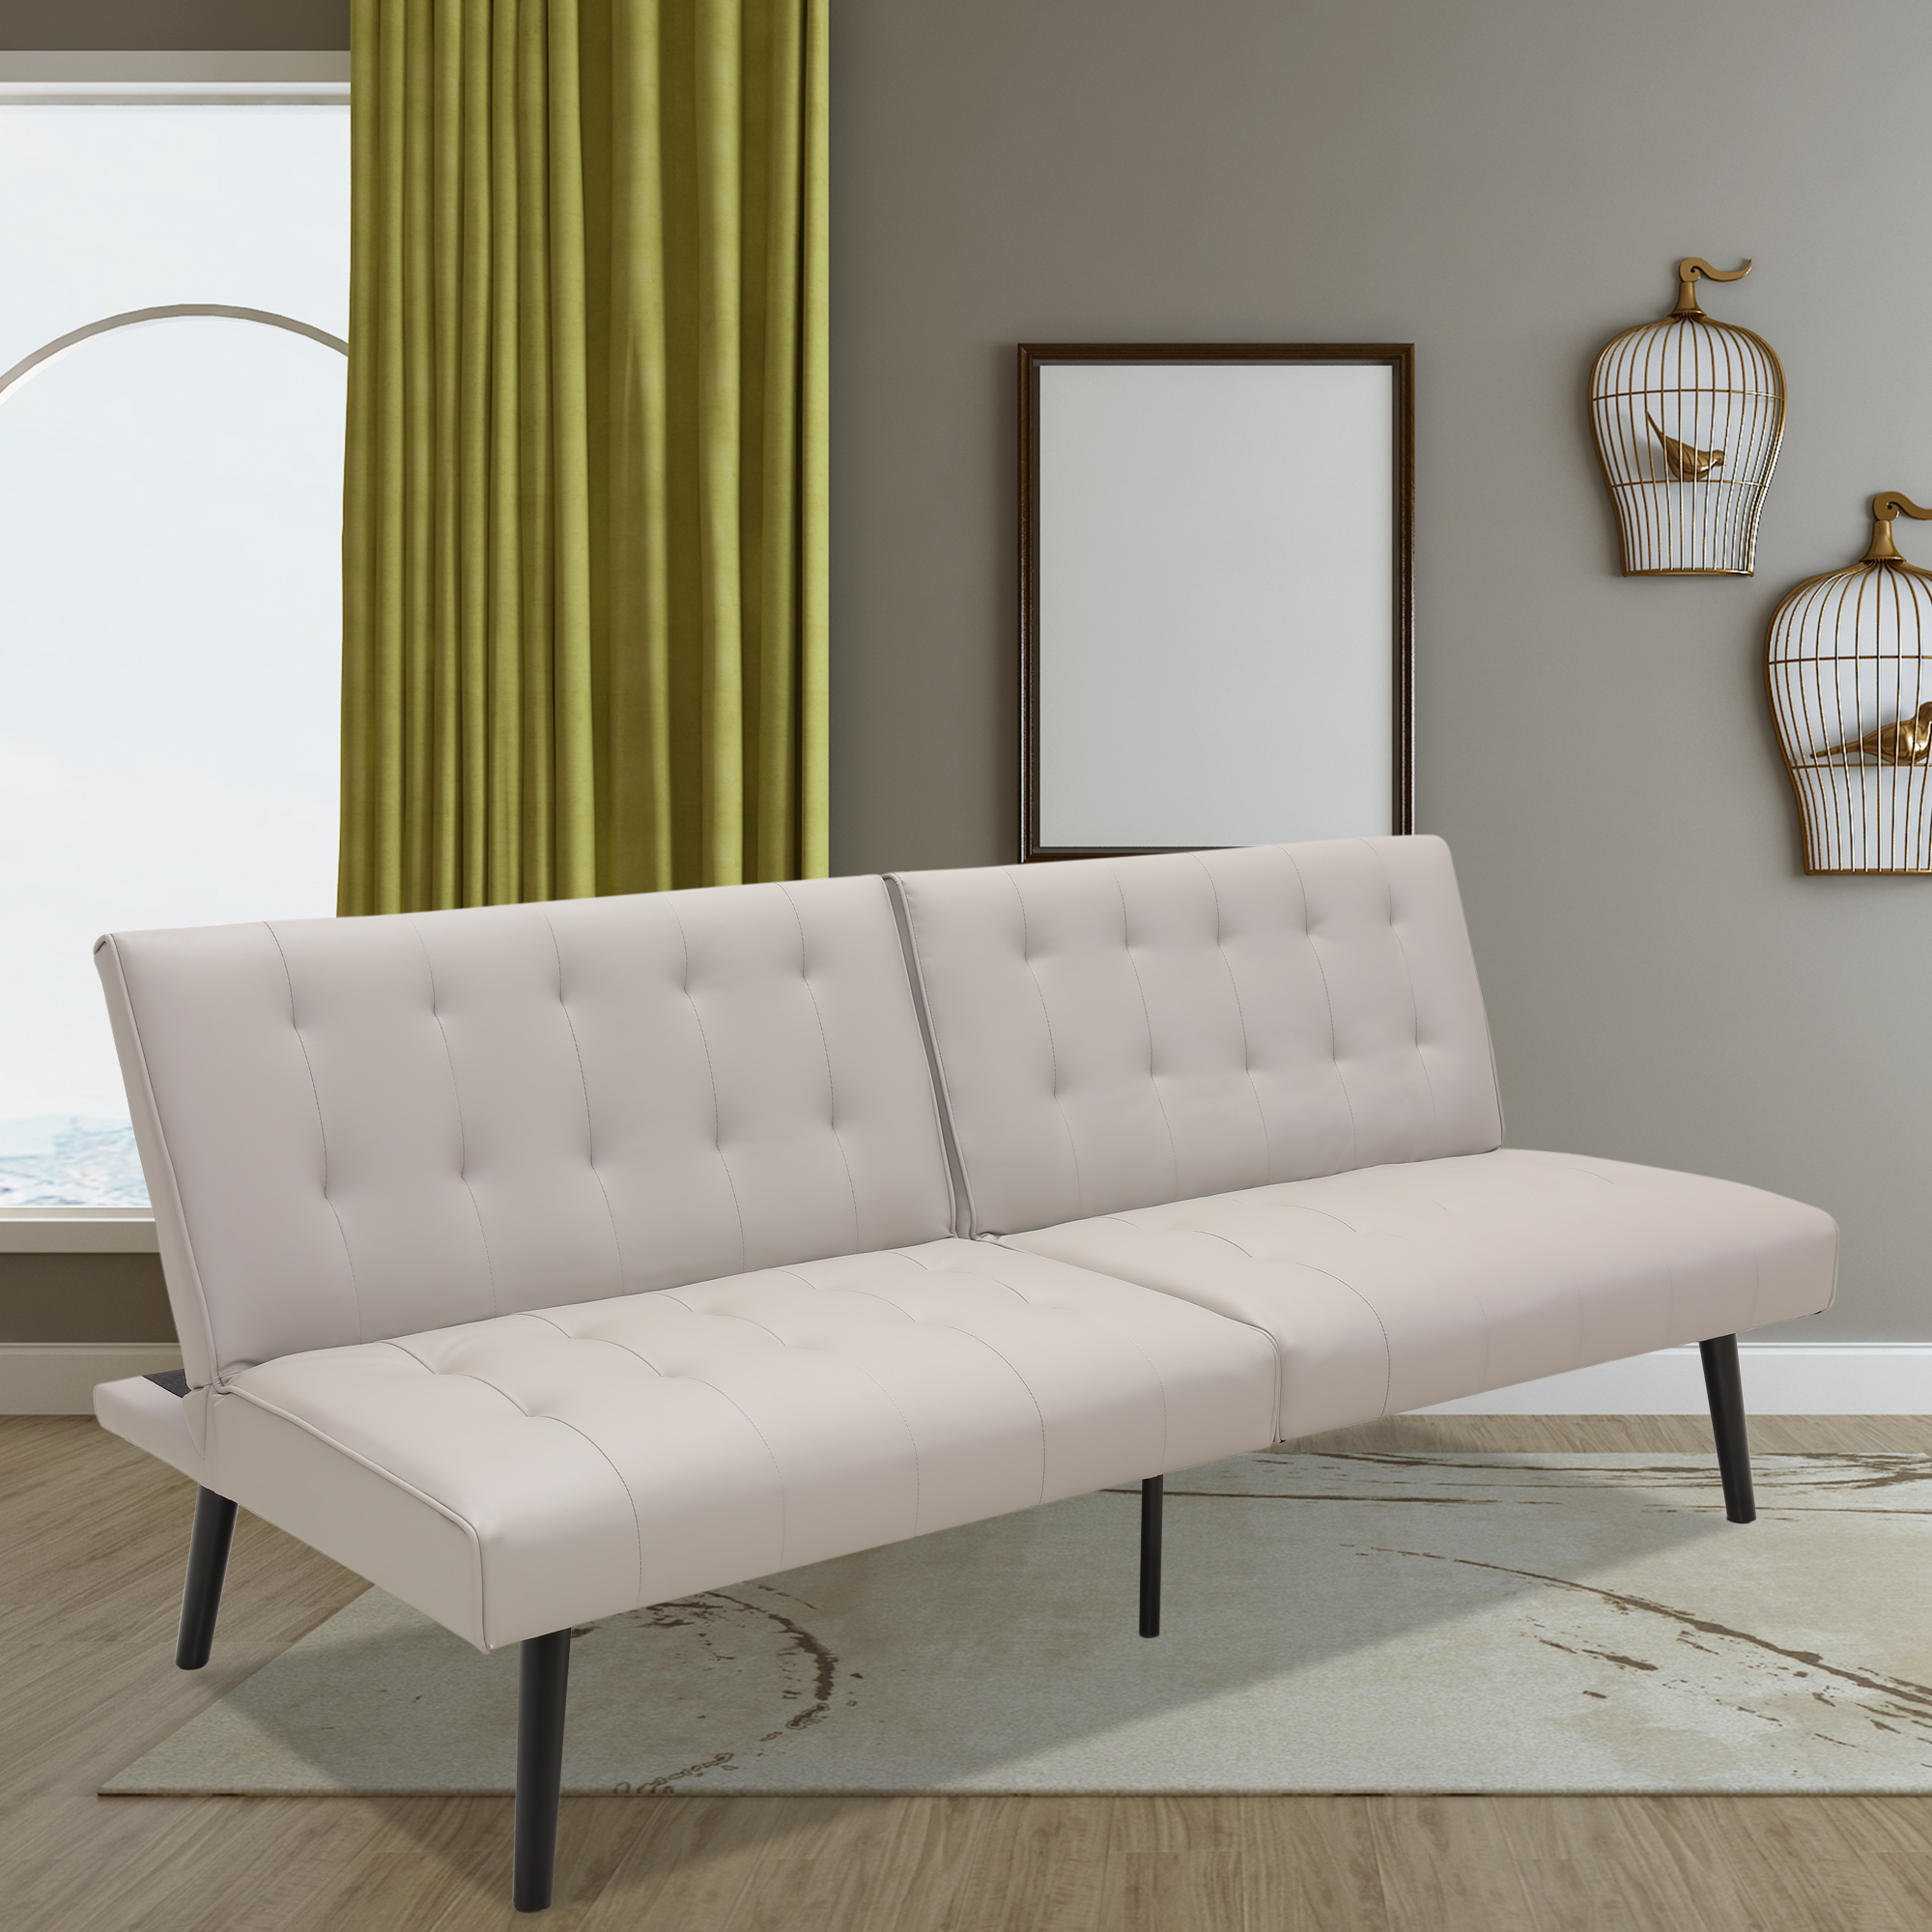 PU Leather Futon Couch of 2 Seats Modern Style Futons ...